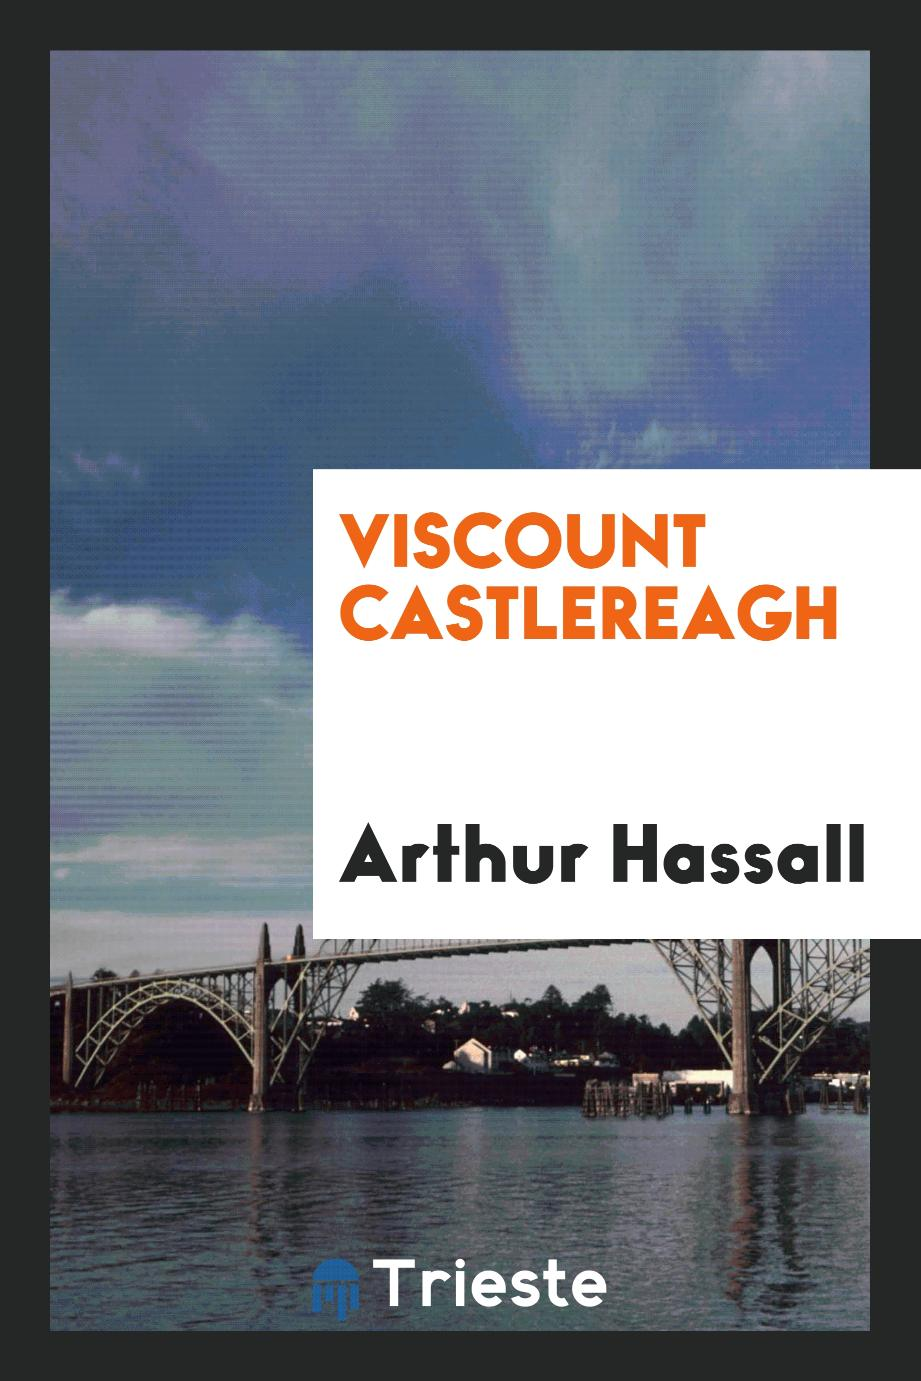 Viscount Castlereagh